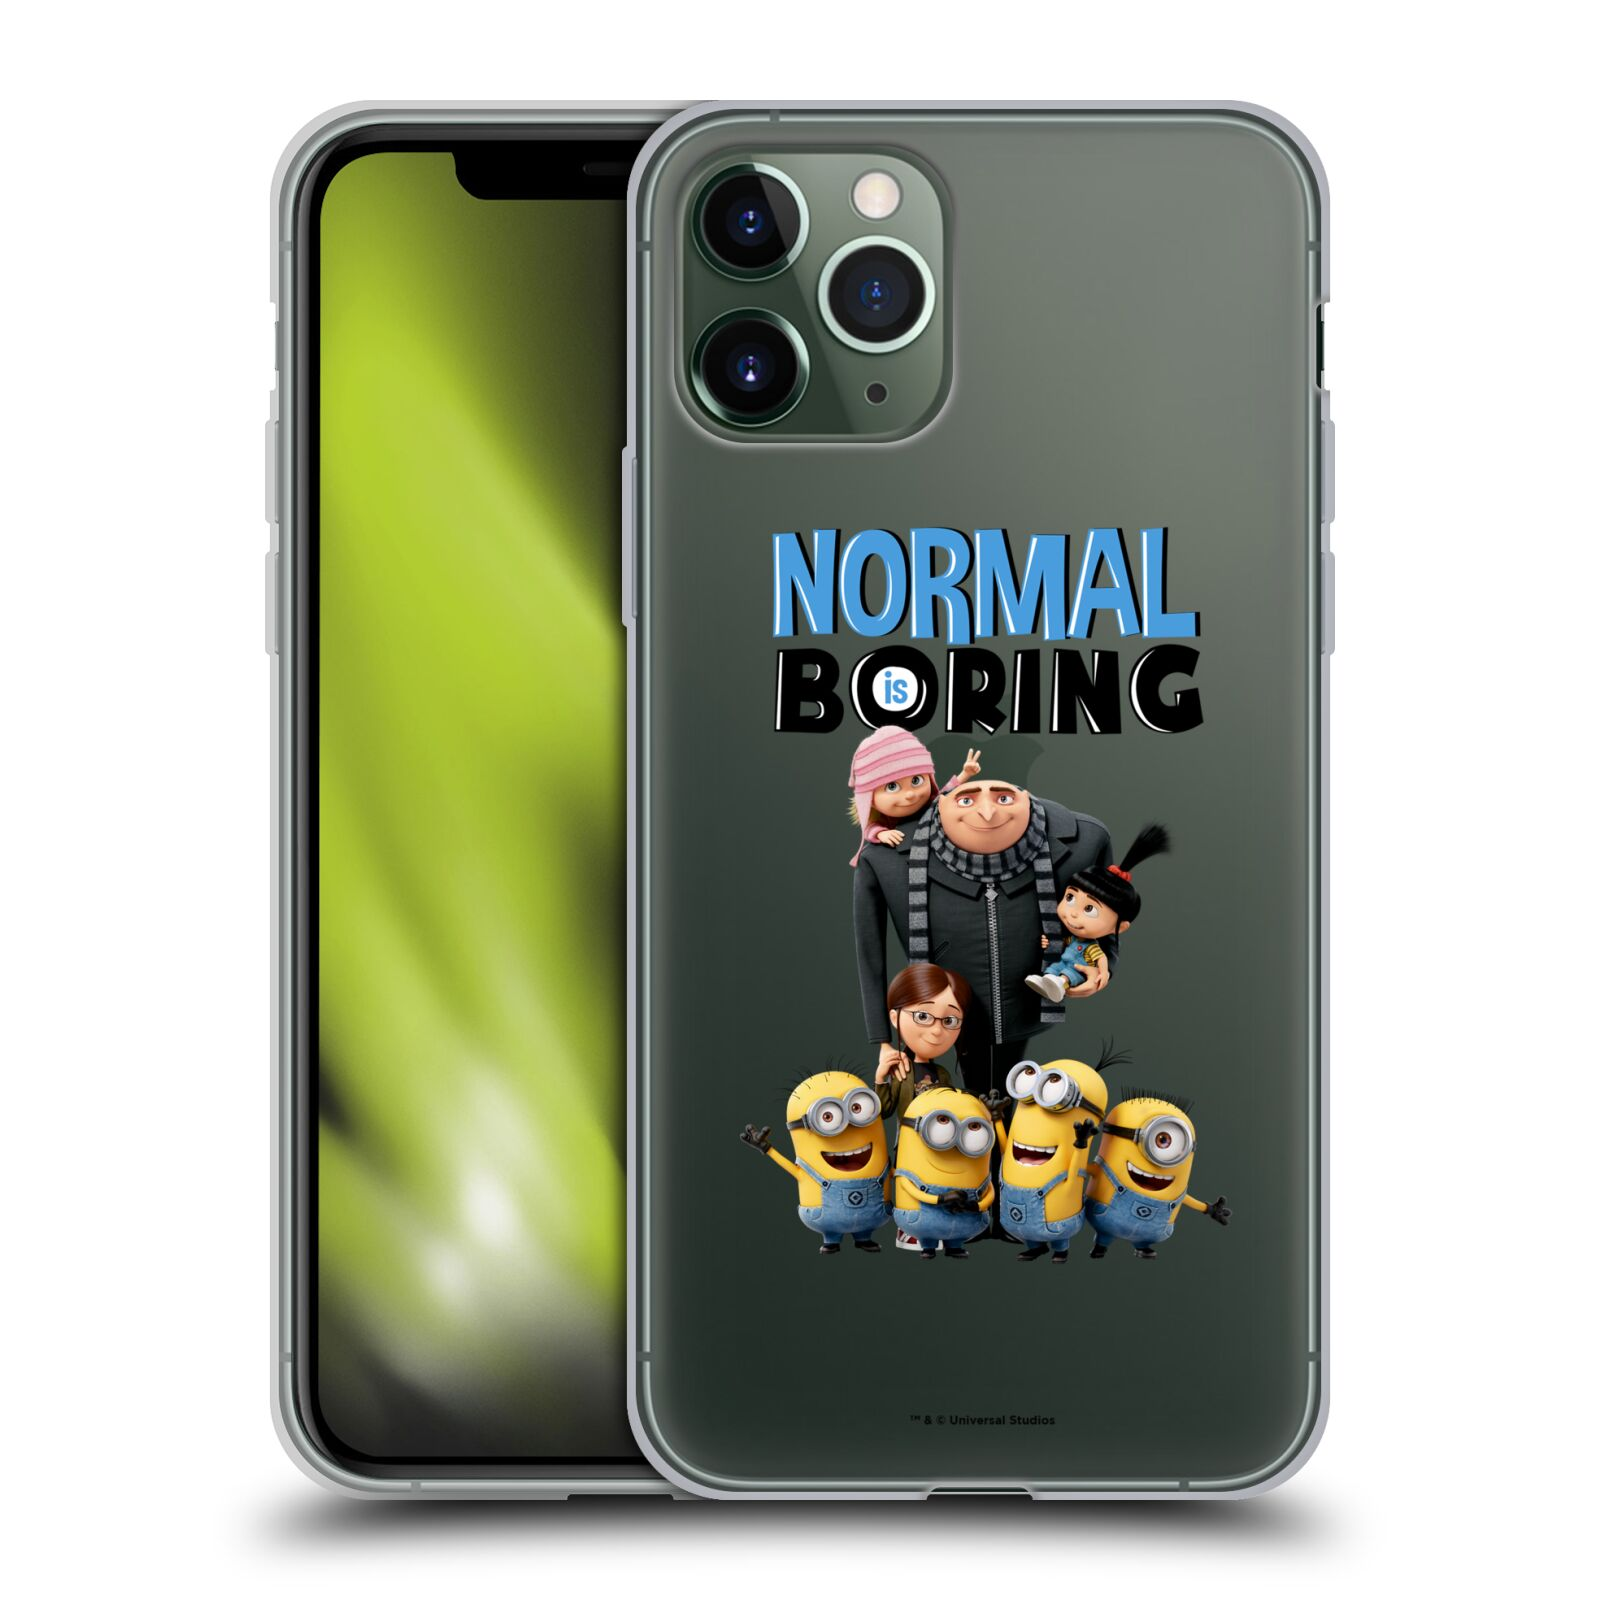 silikonové krytu na iphone 6 plus - Silikonové pouzdro na mobil Apple iPhone 11 Pro - Head Case - Normal is boring z filmu Já, padouch - Despicable Me